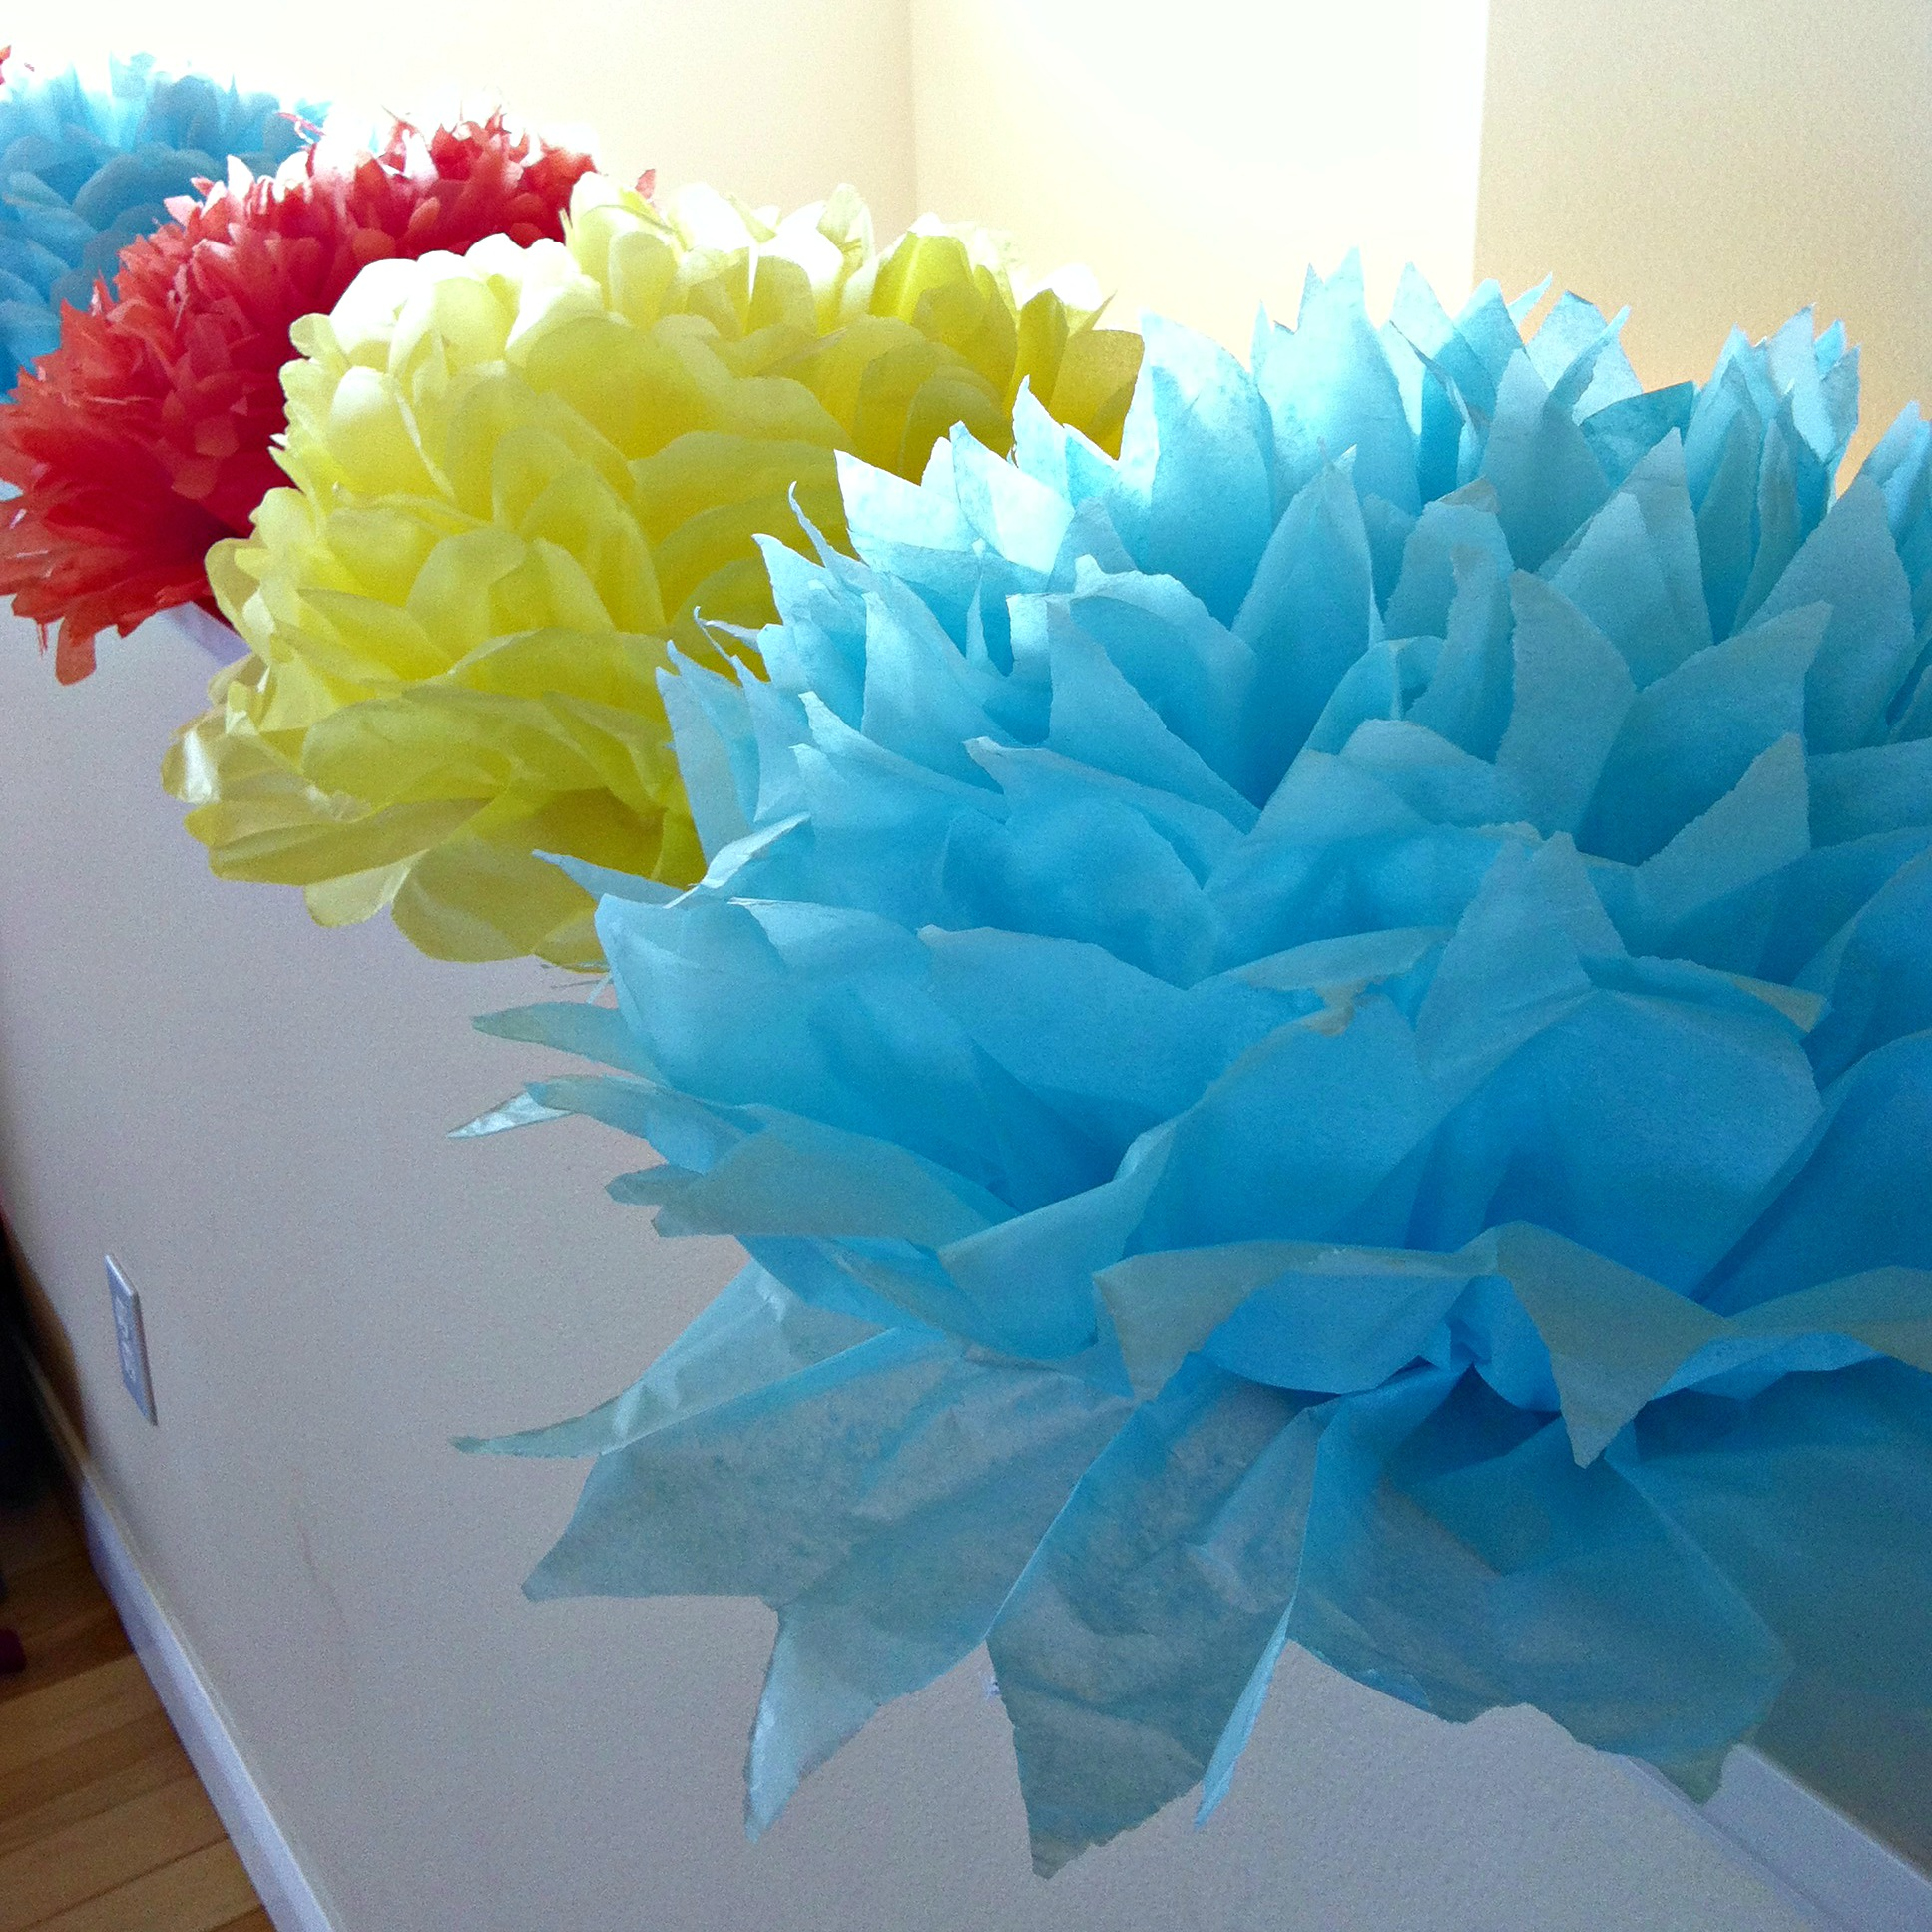 Tutorial how to make diy giant tissue paper flowers hello diy giant handmade tissue paper flowers tutorial 2 for 100 make beautiful birthday party decorations final jeuxipadfo Choice Image